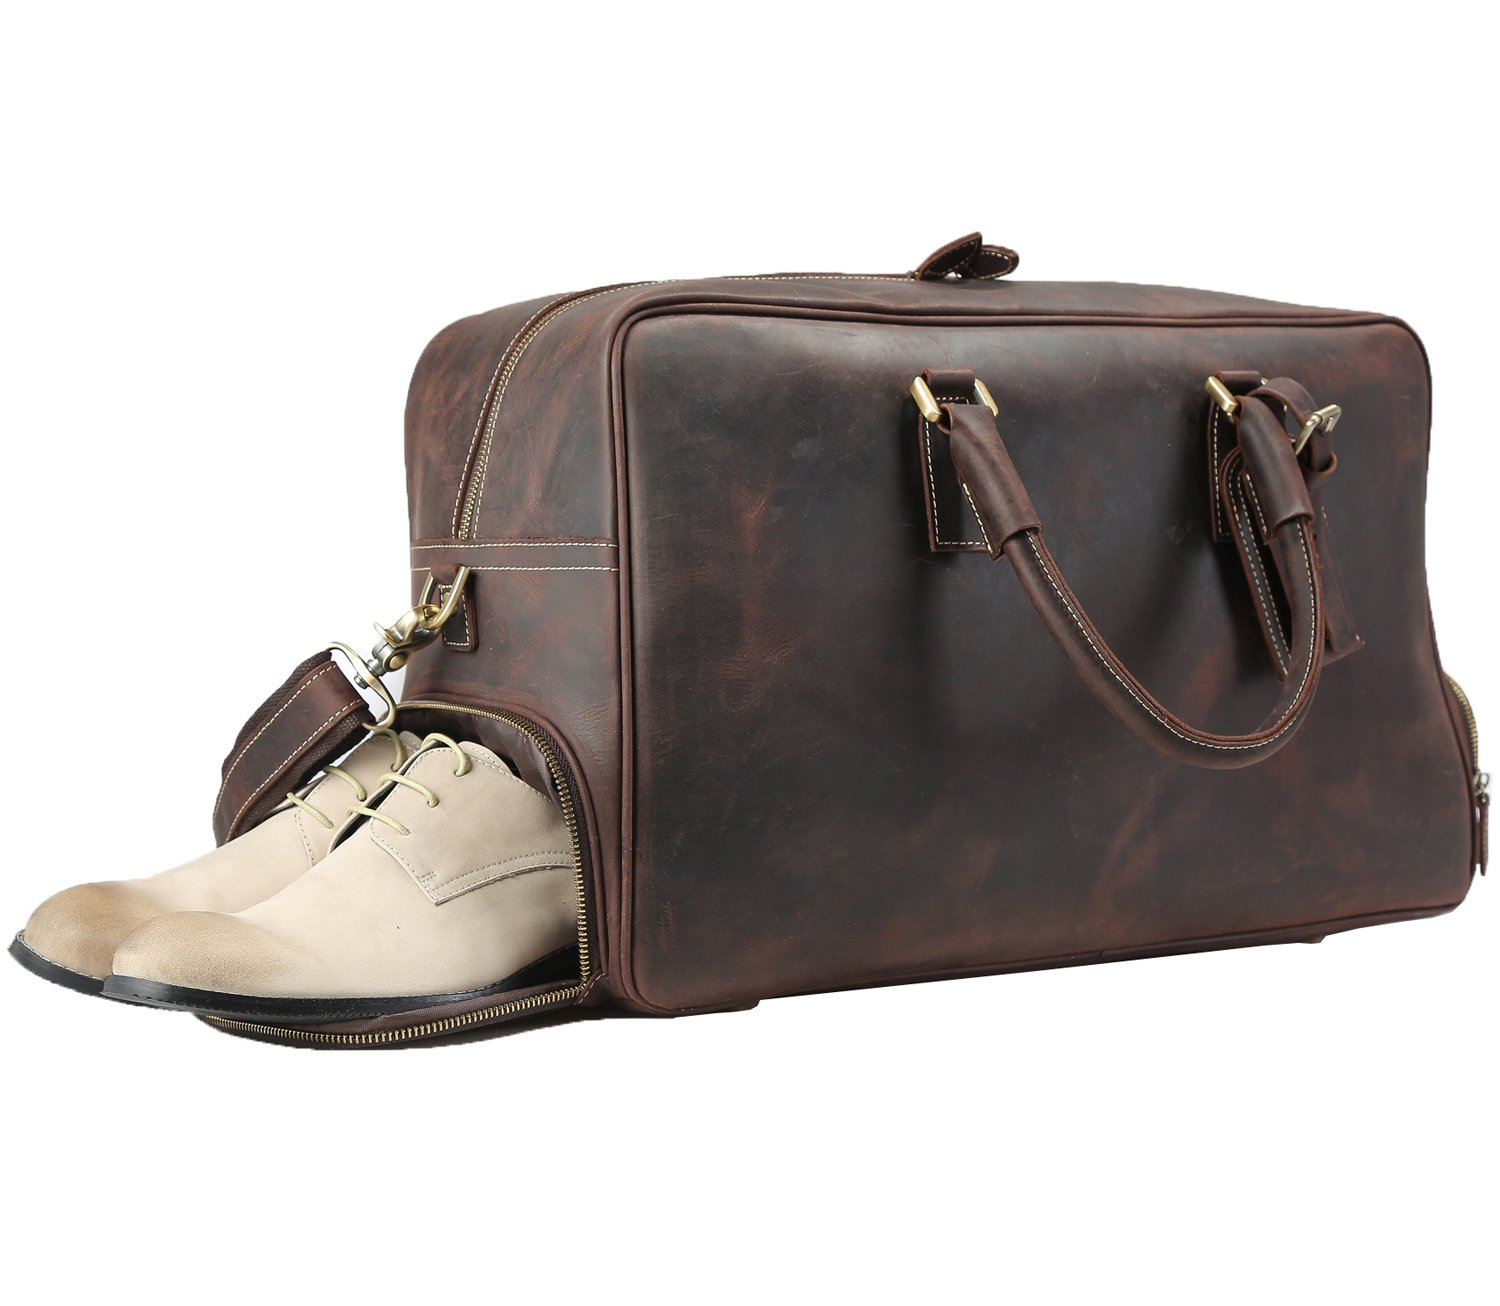 Texbo Cowhide Leather Weekend Travel Hiking Duffle Sport Bag With Shoes Storage 20''